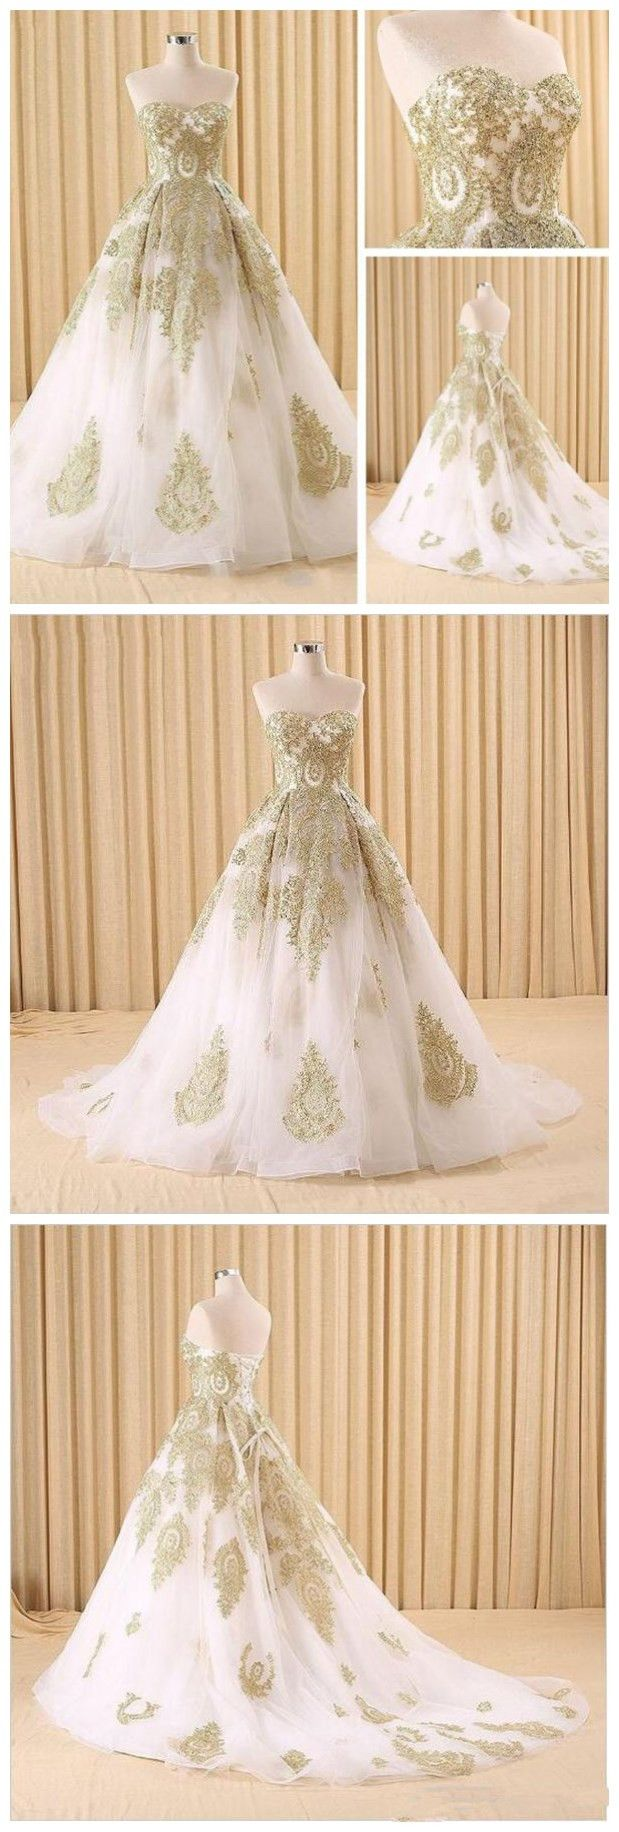 Elegant white and gold lace prom dressesball gown evening dressesa